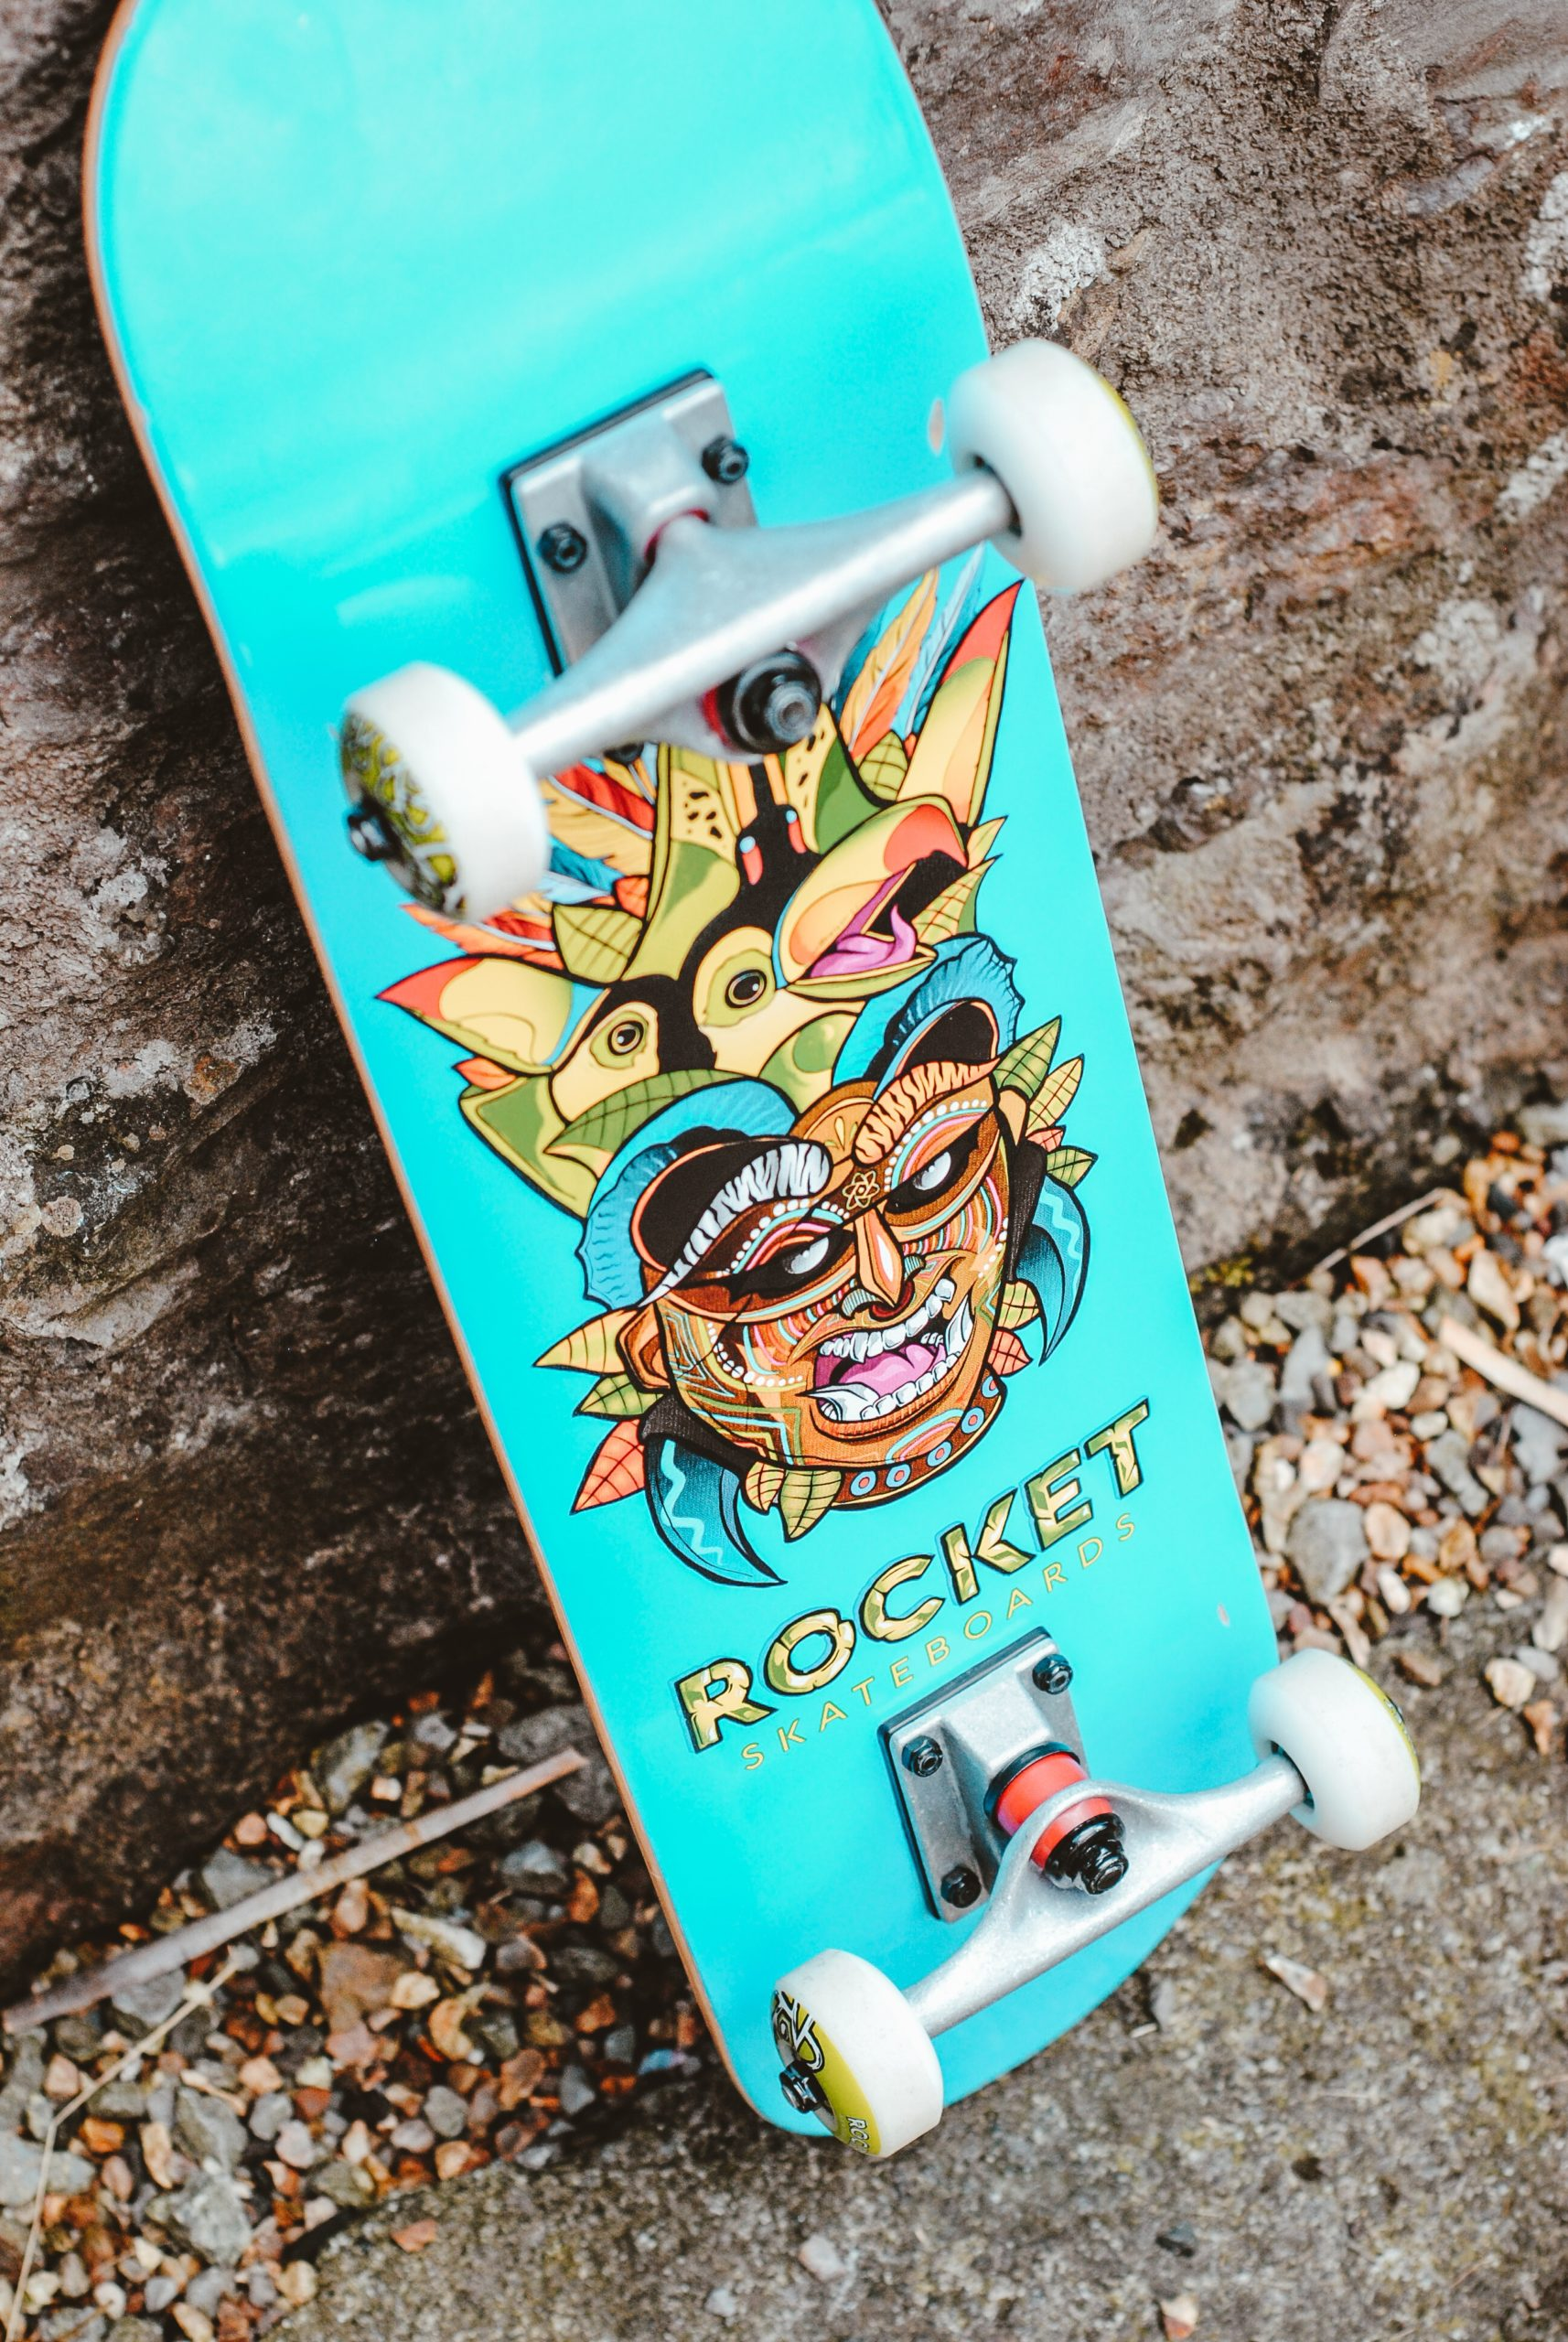 How To Find The Best Skateboard Ramps